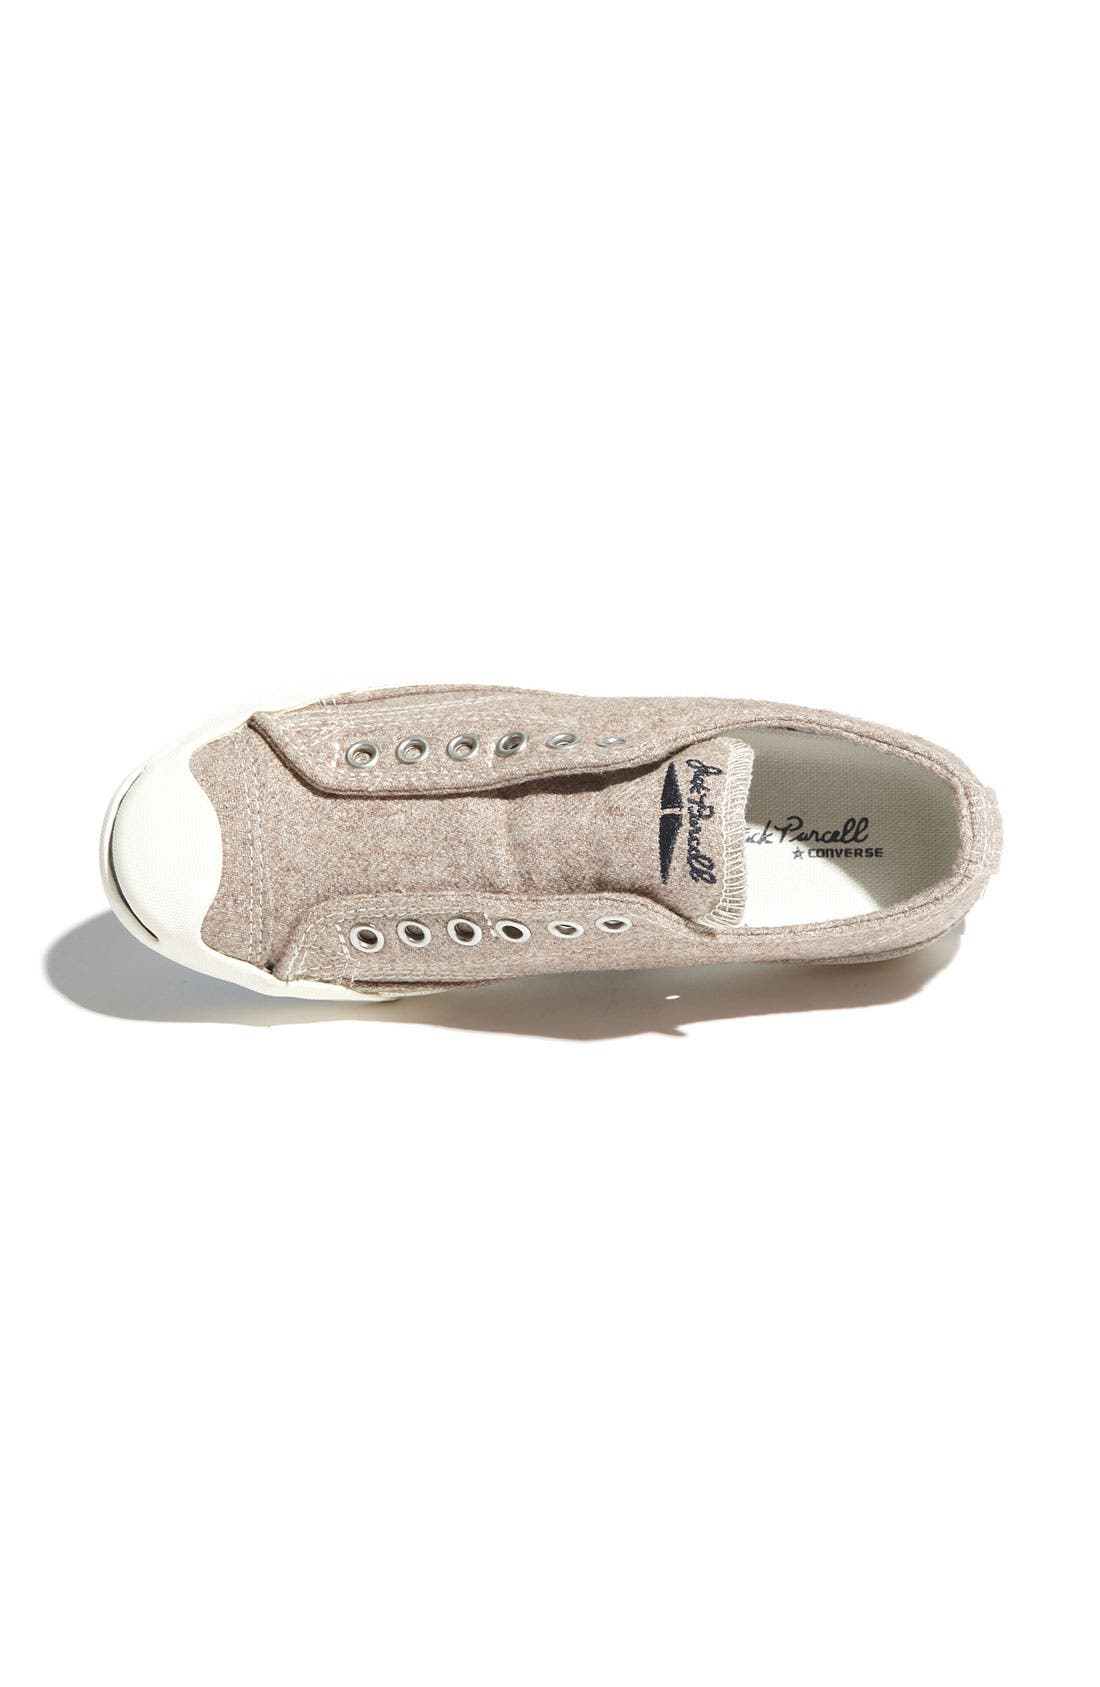 Alternate Image 3  - Converse 'Jack Purcell' Slip-On Sneaker